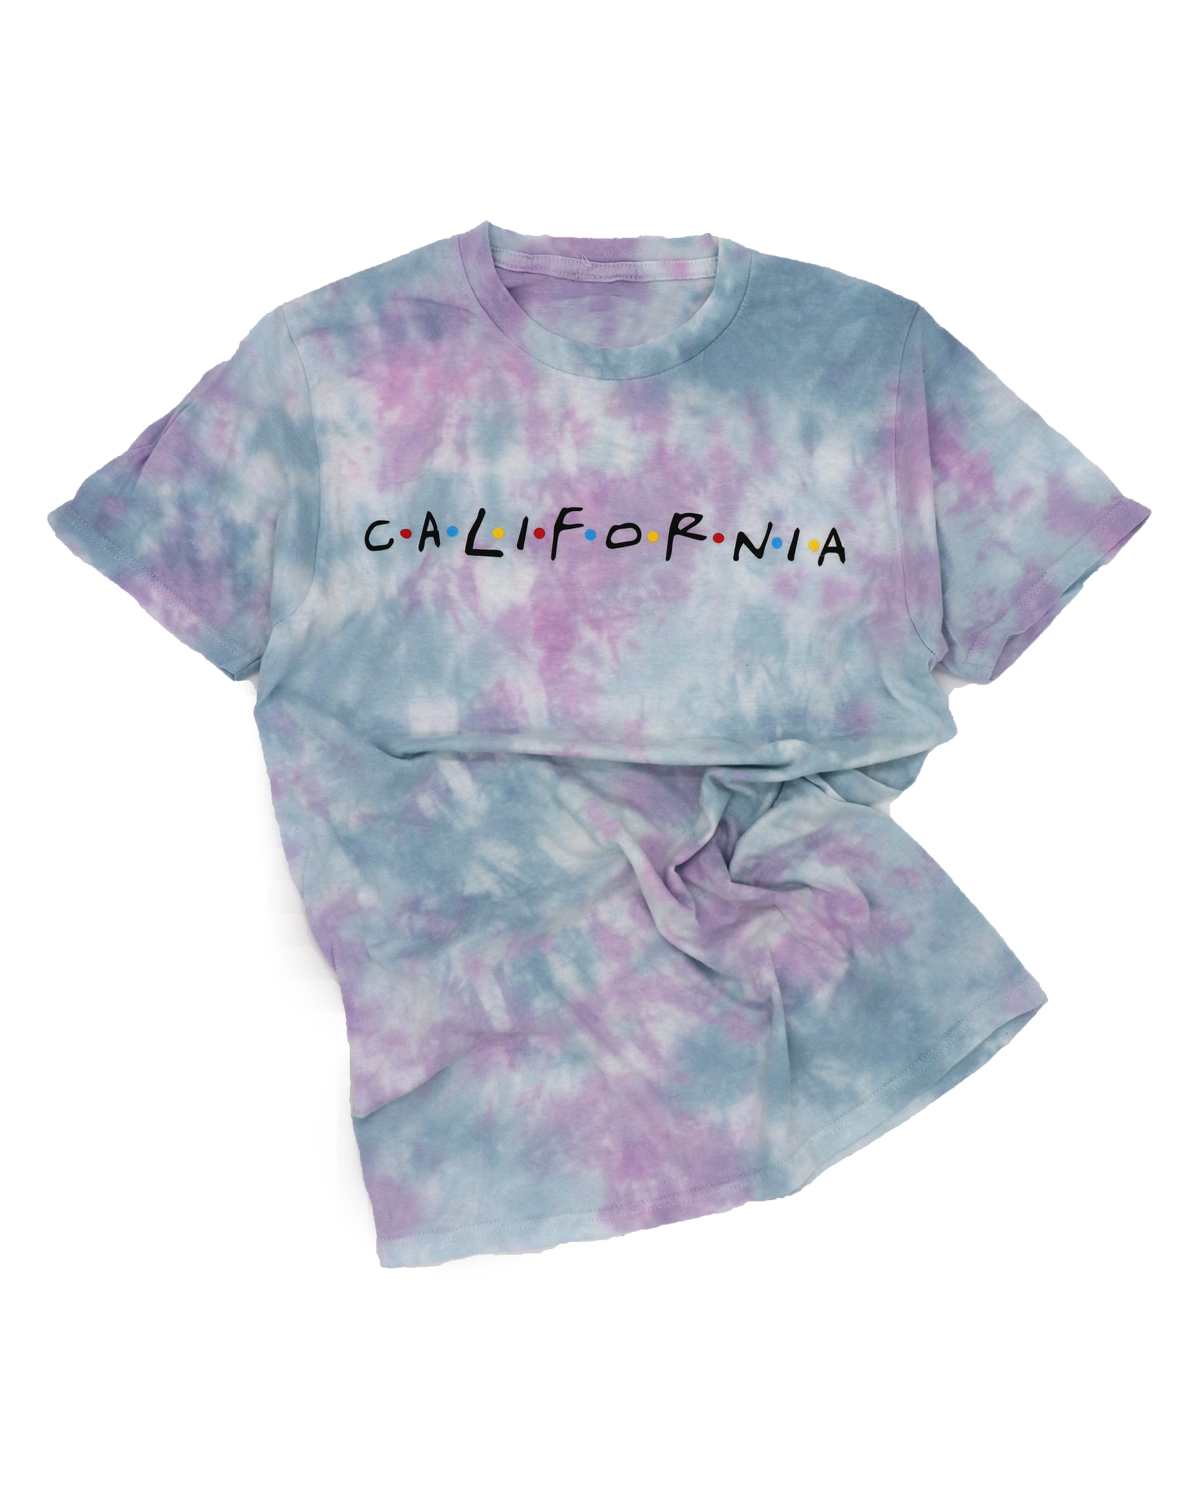 California friends tshirt graphic design inspired by the comedy friends sitcom show friends. Lovely Tie Dye California Shirt. Women Shirts or Men Shirts unisex. Sold by SDTrading Co.